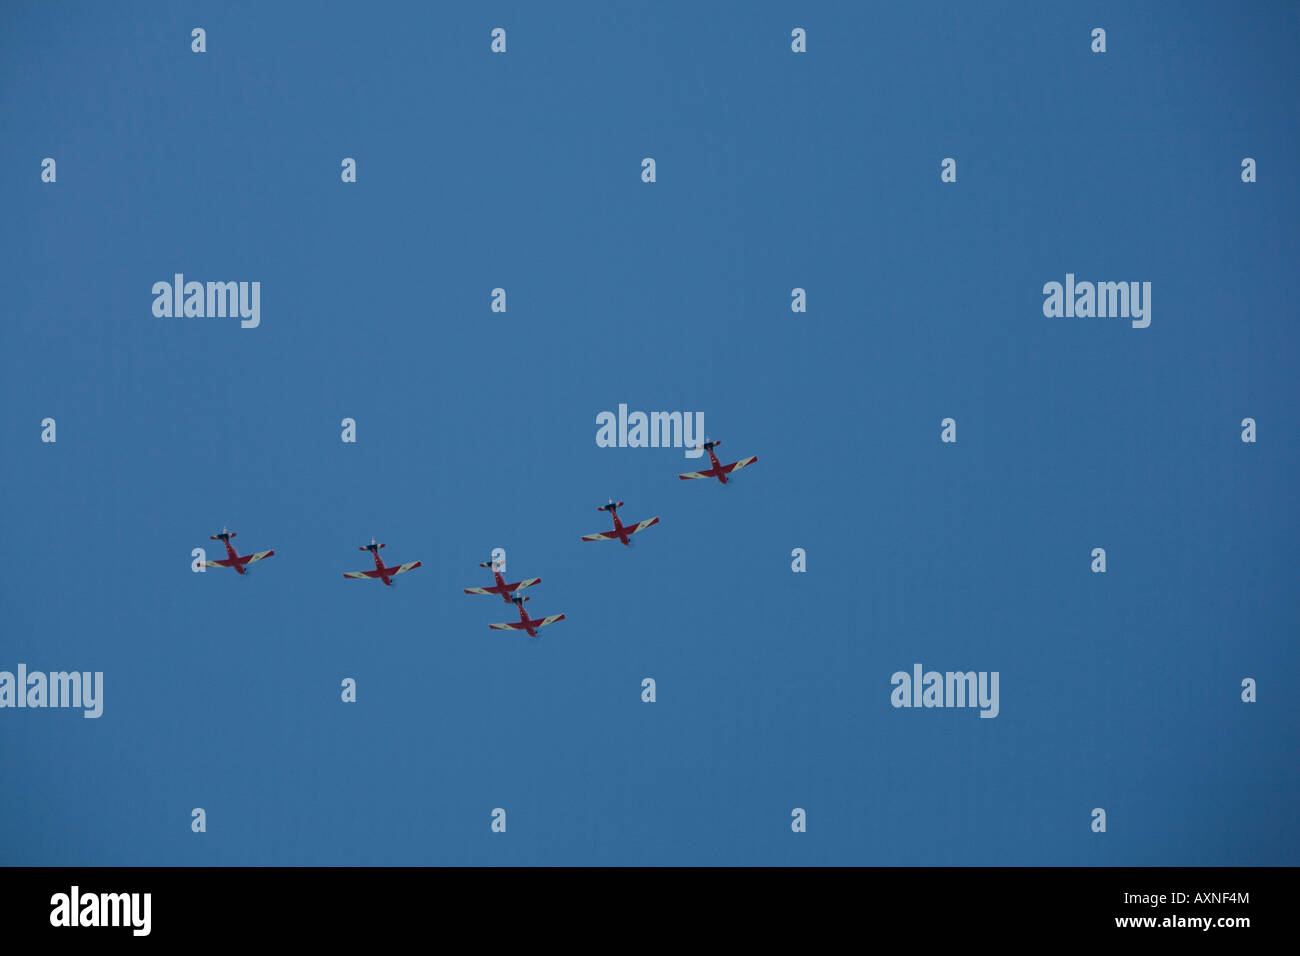 aeroplanes flying in formation over sydney - Stock Image